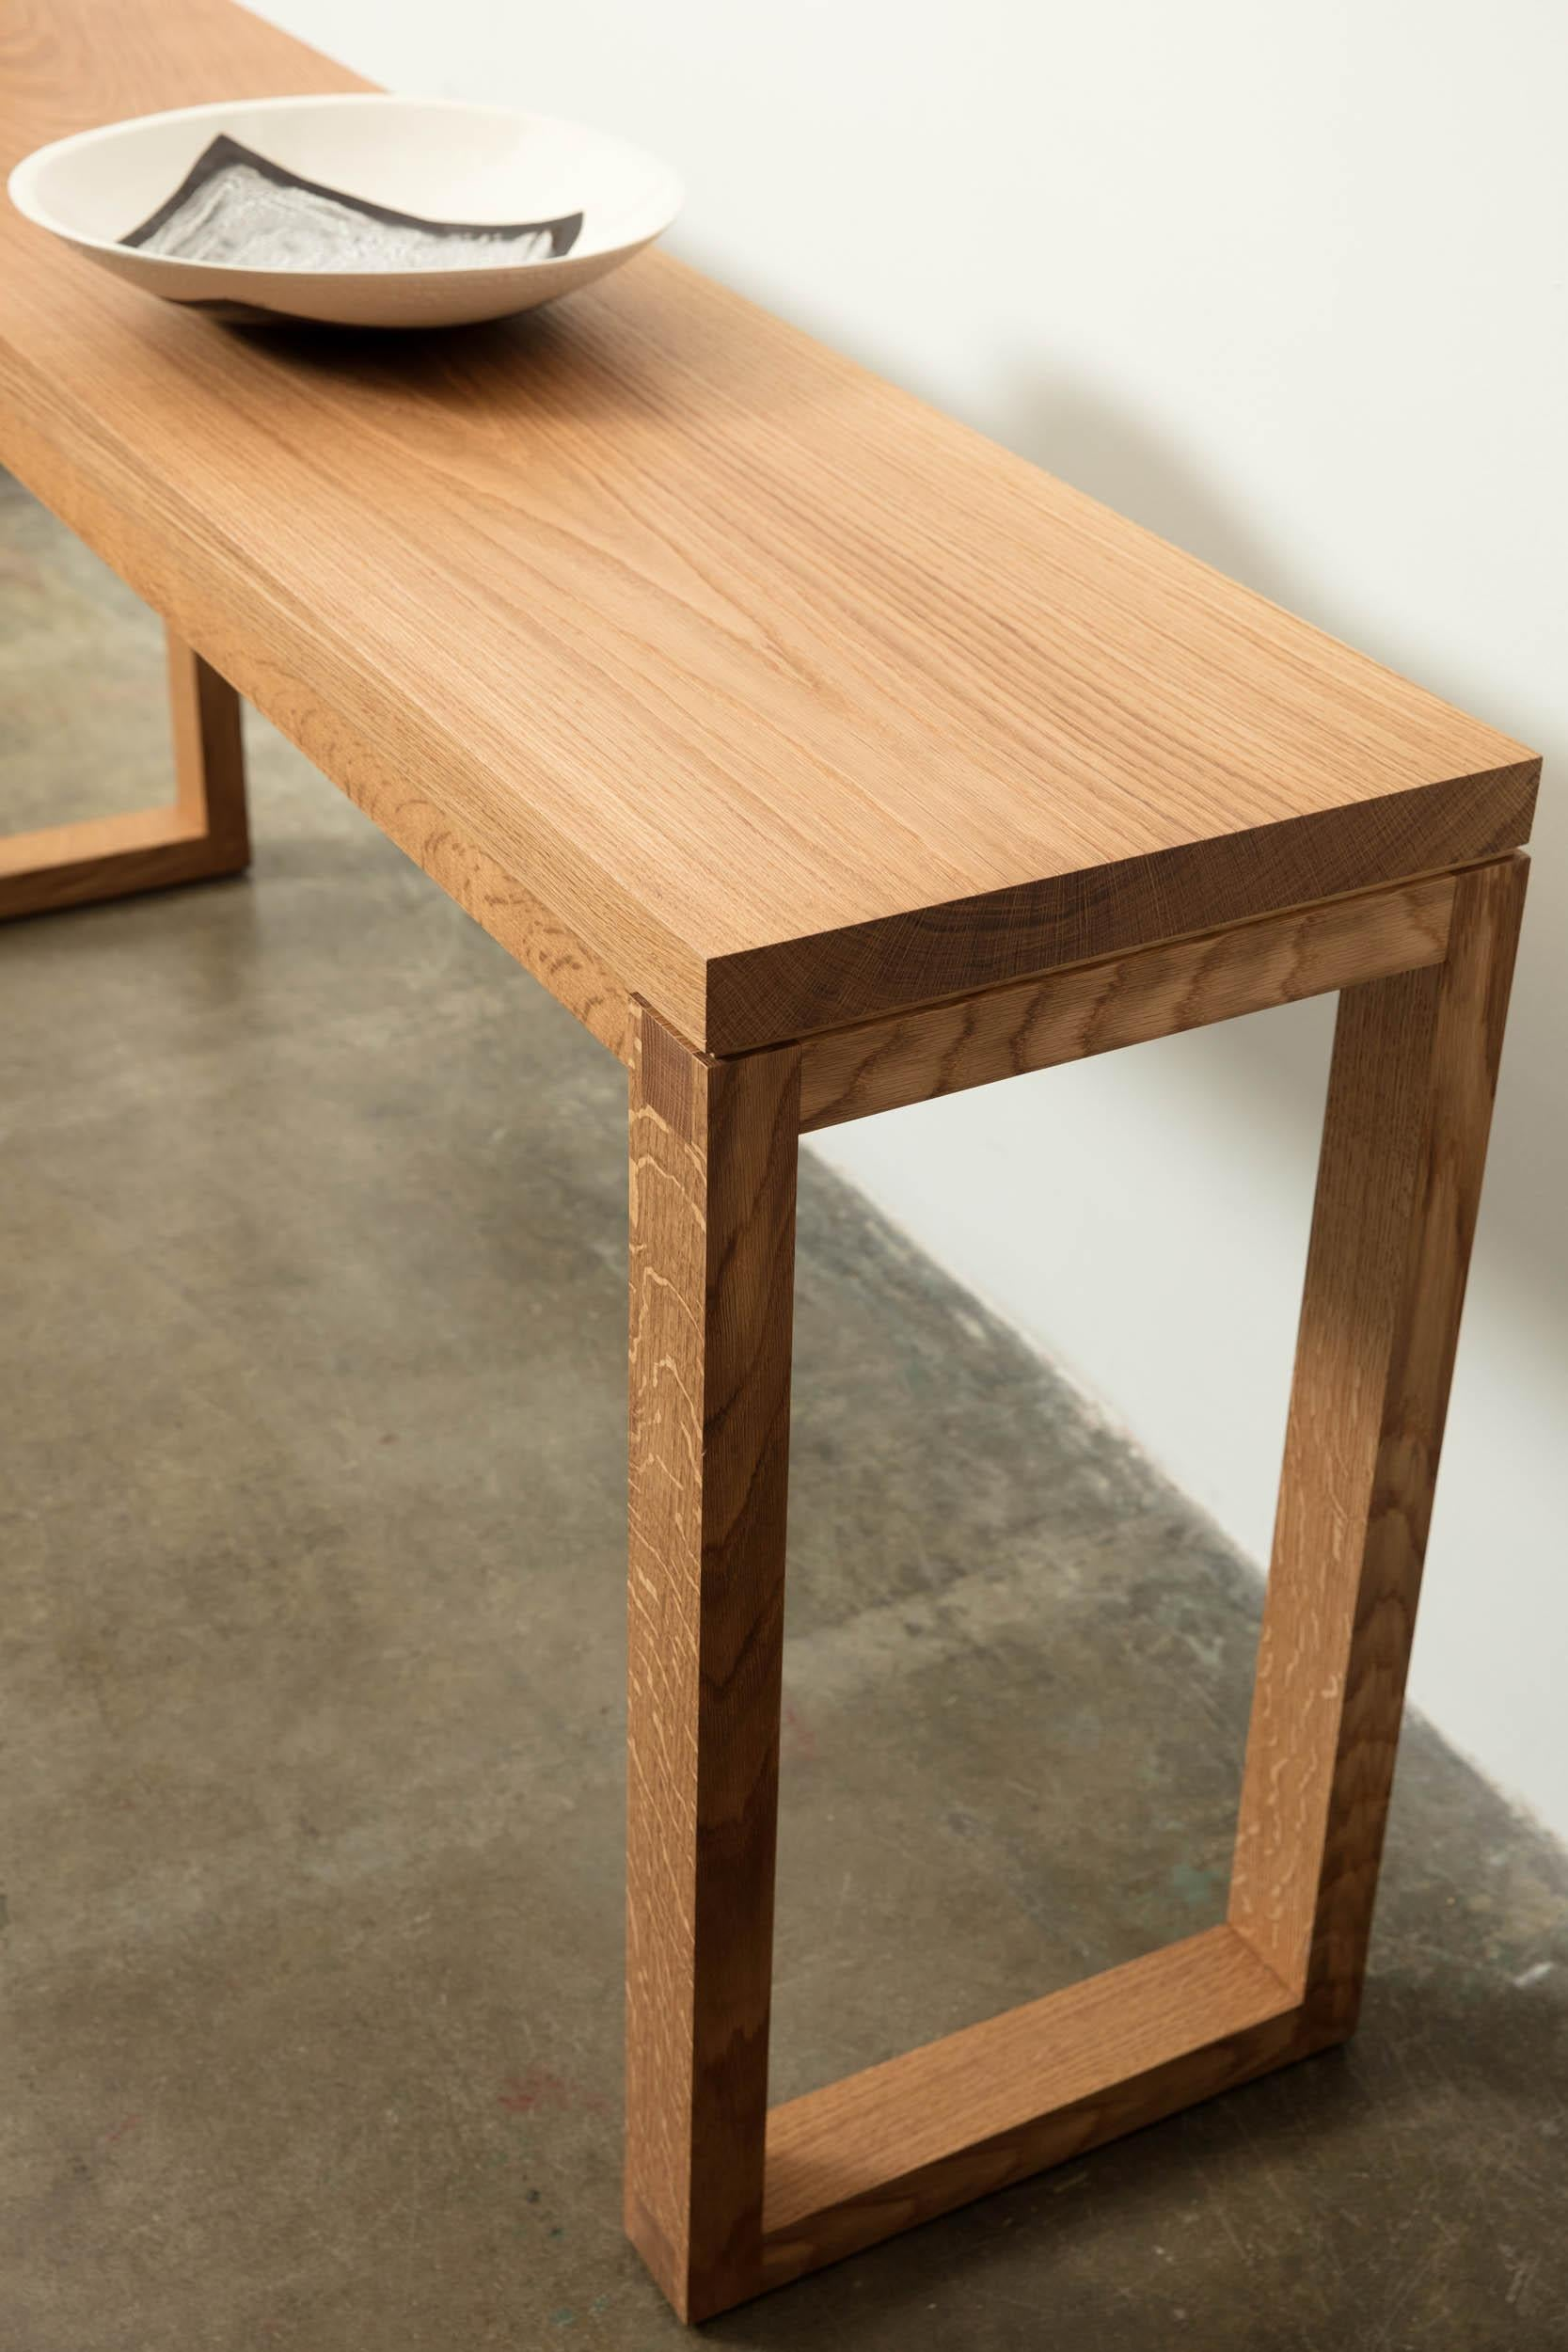 Picture of: Narrow Modern White Oak Wood Console Table Parsons Style By Alabama Sawyer For Sale At 1stdibs